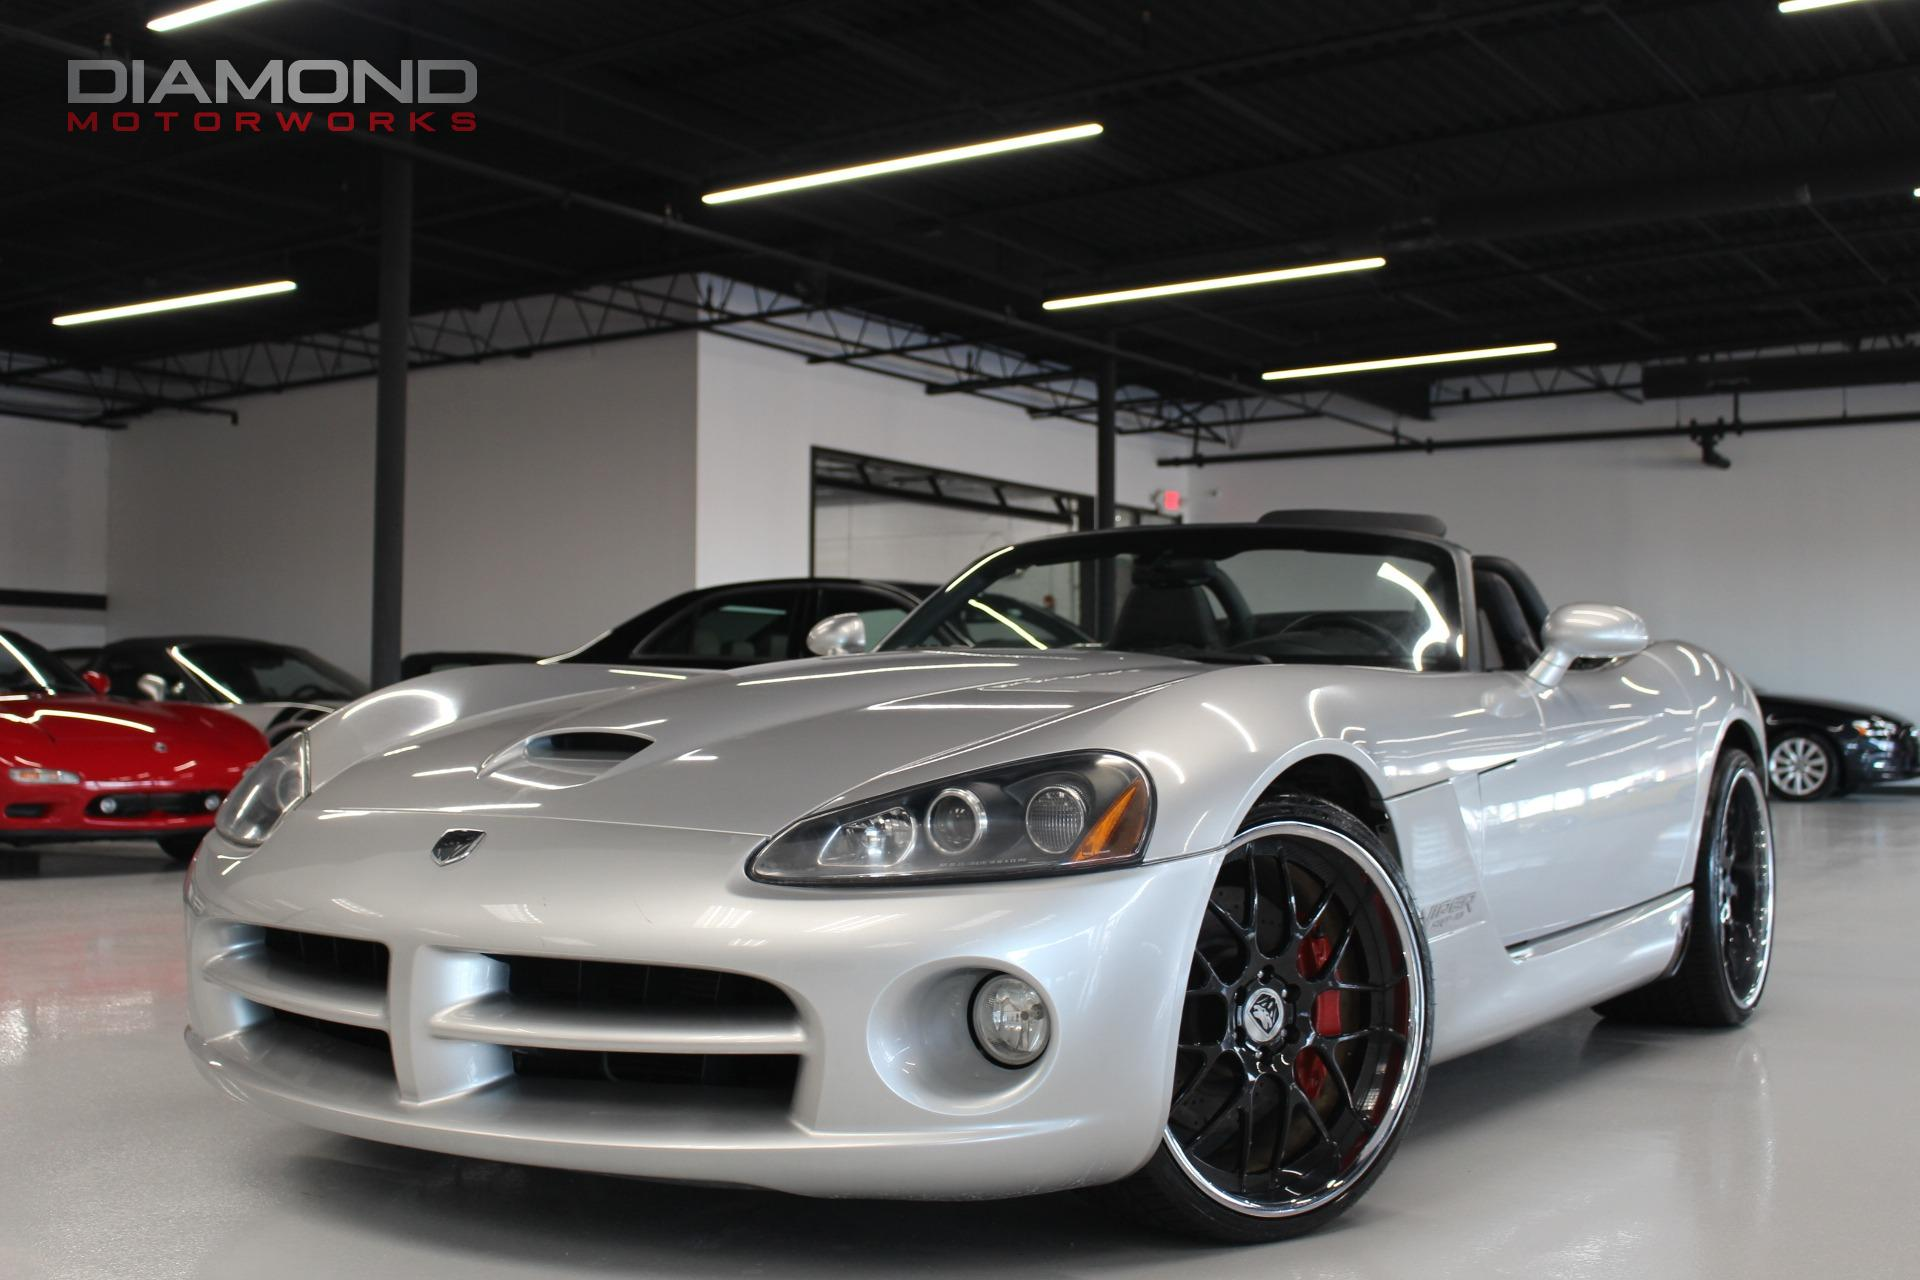 2004 Dodge Viper 2dr Convertible Srt10 Stock 100914 For